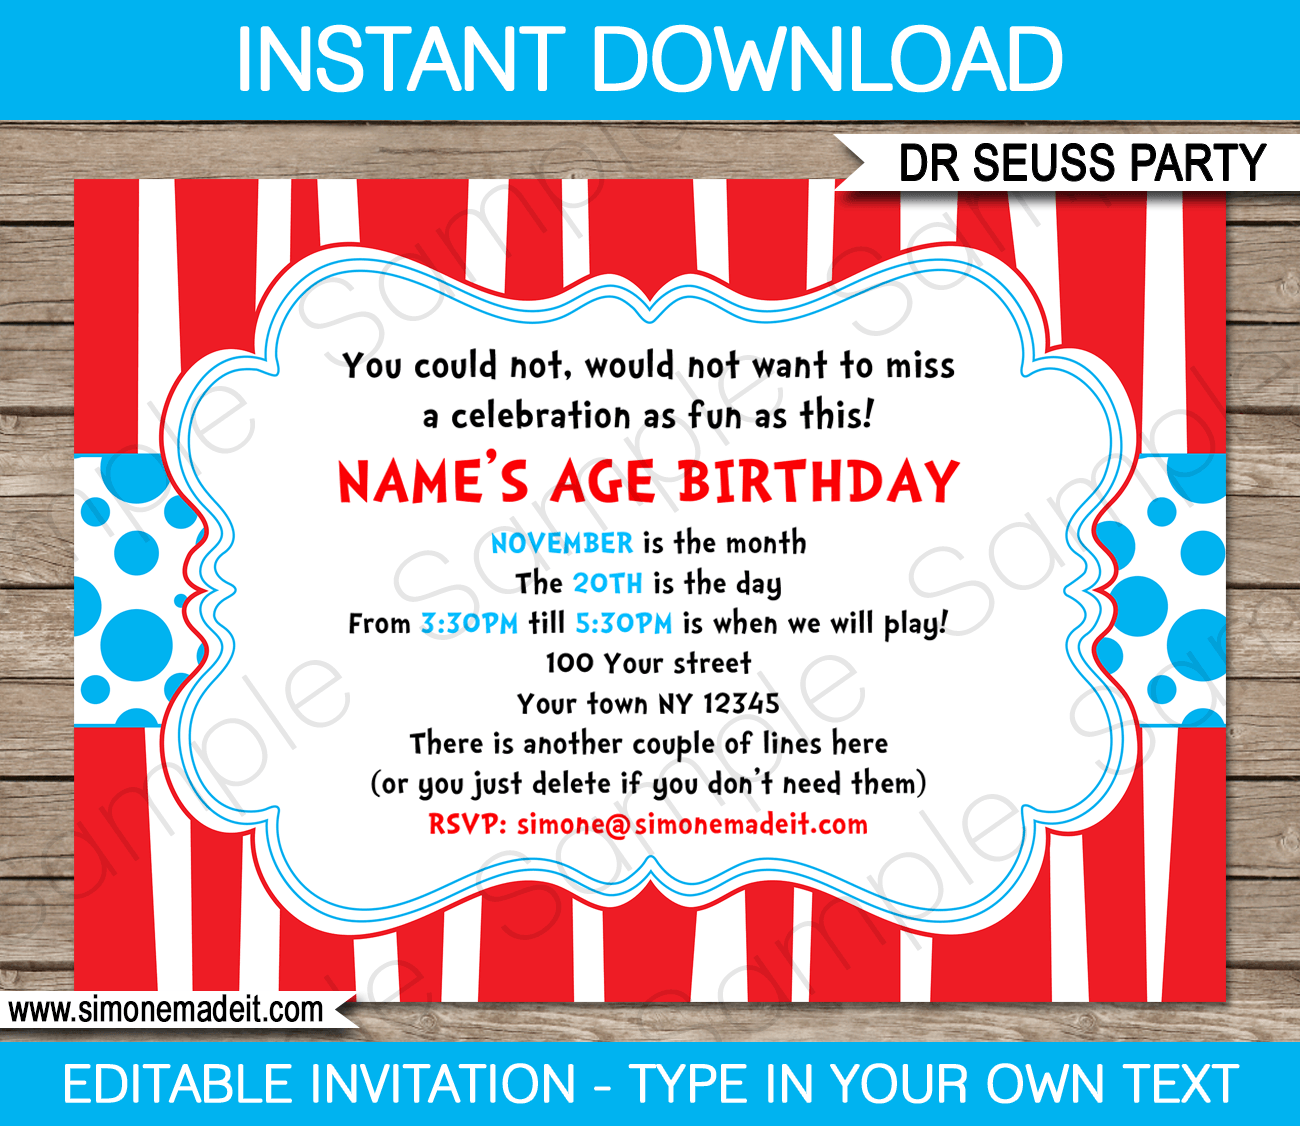 Dr seuss party invitations birthday party template dr seuss party invitations birthday party editable diy theme template instant download 750 stopboris Choice Image